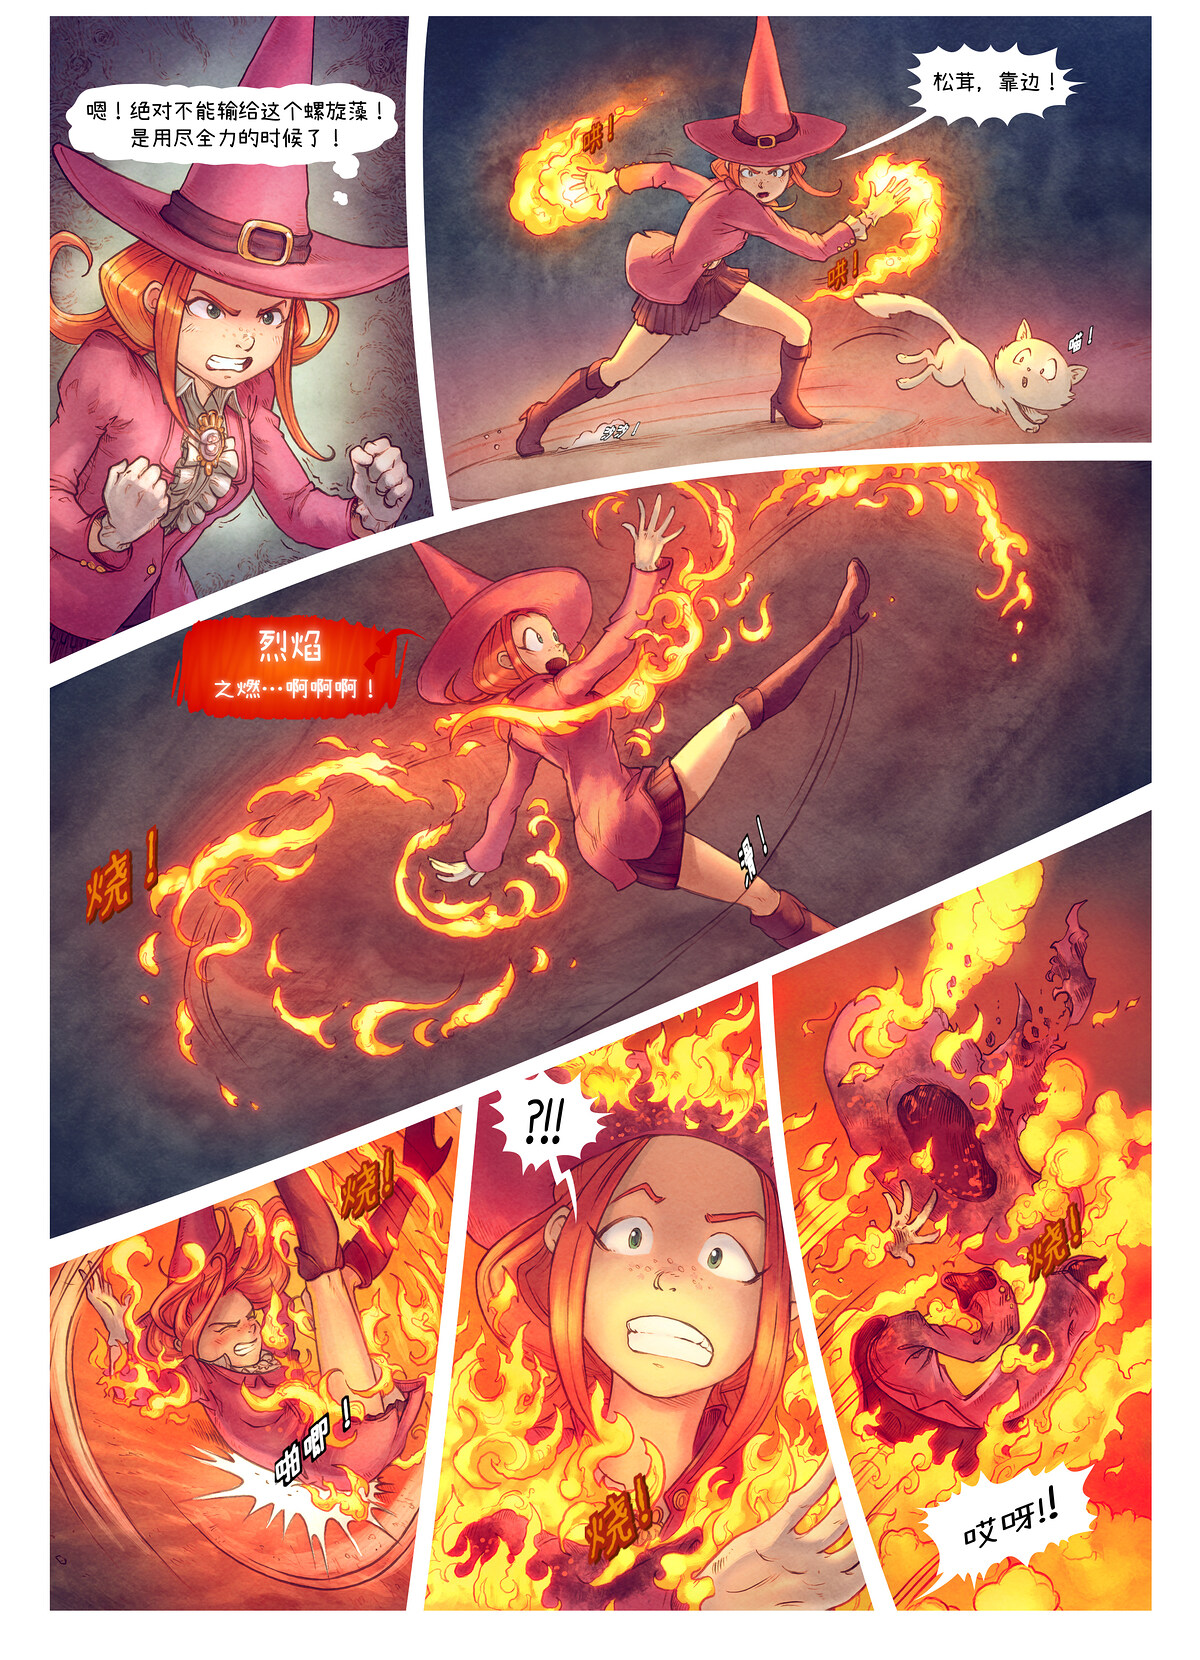 A webcomic page of Pepper&Carrot, 漫画全集 22 [cn], 页面 8